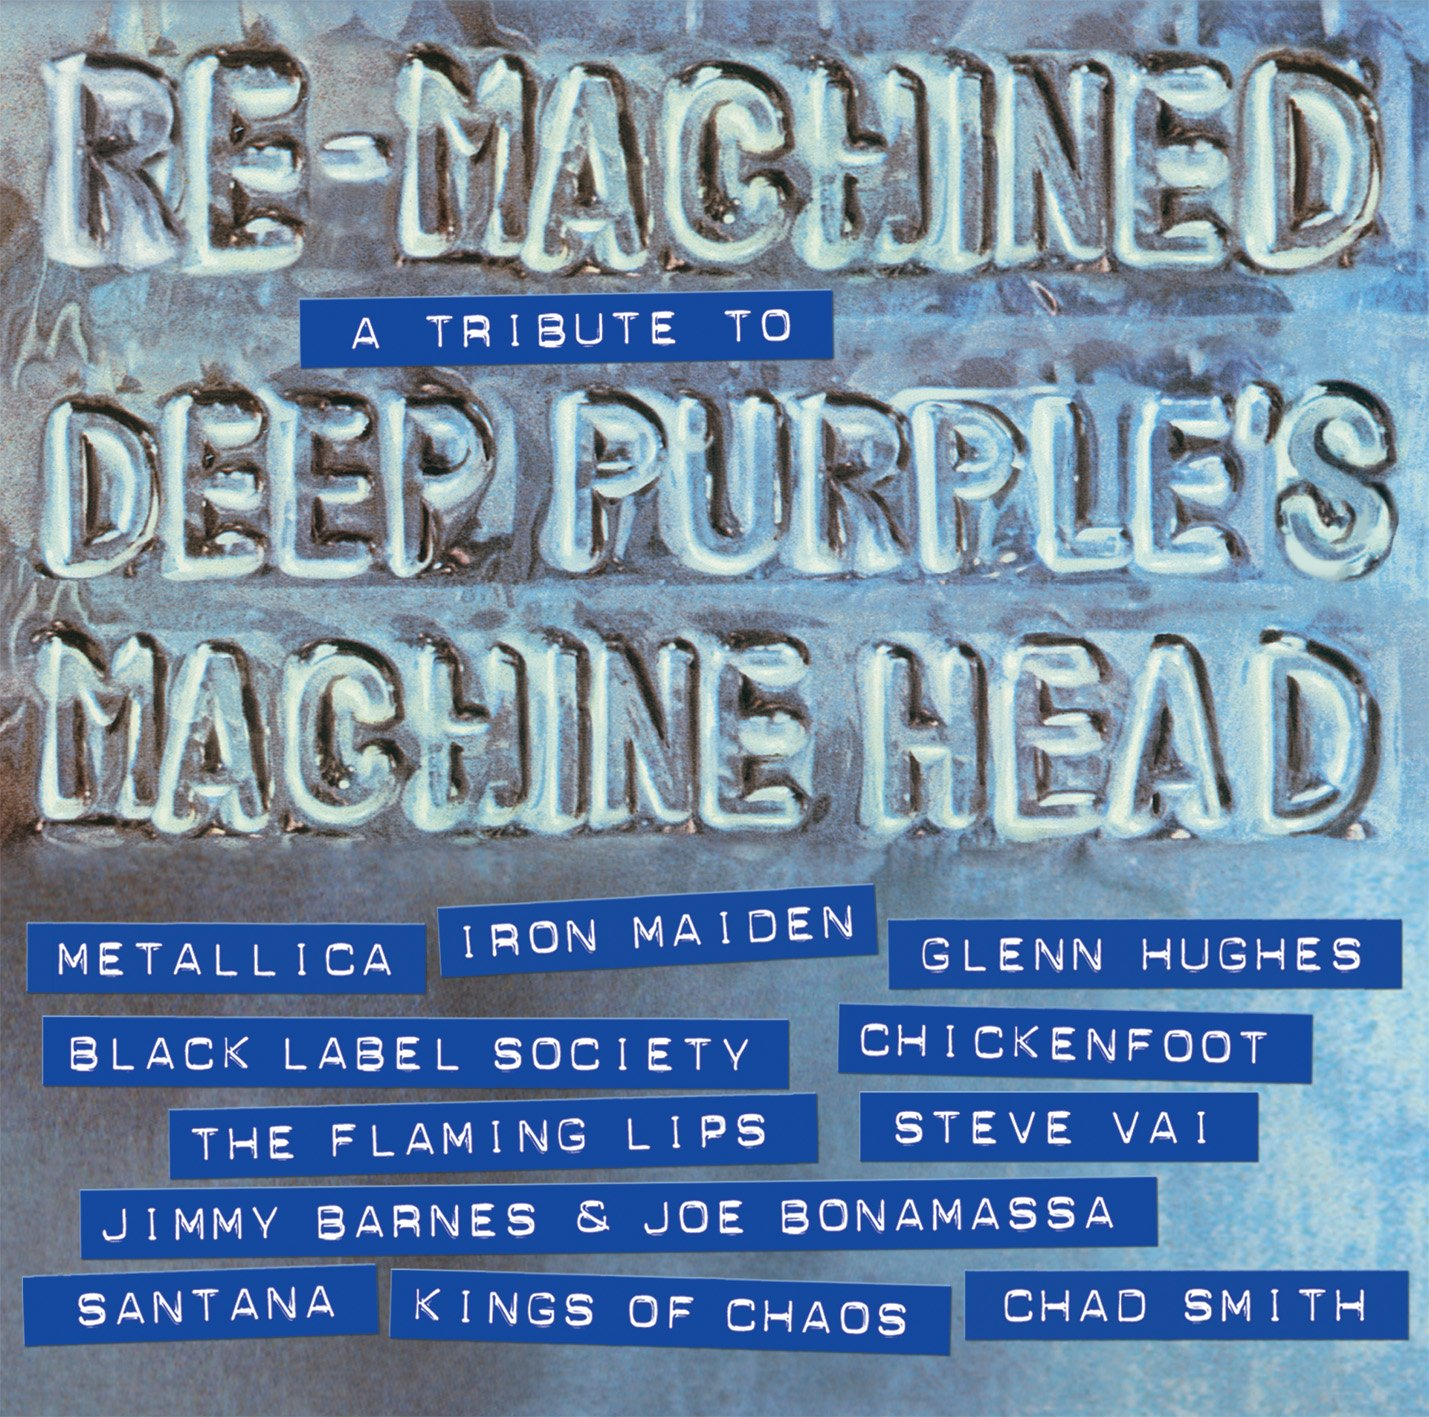 Re-Machined: A Tribute To Deep Purple's Machine